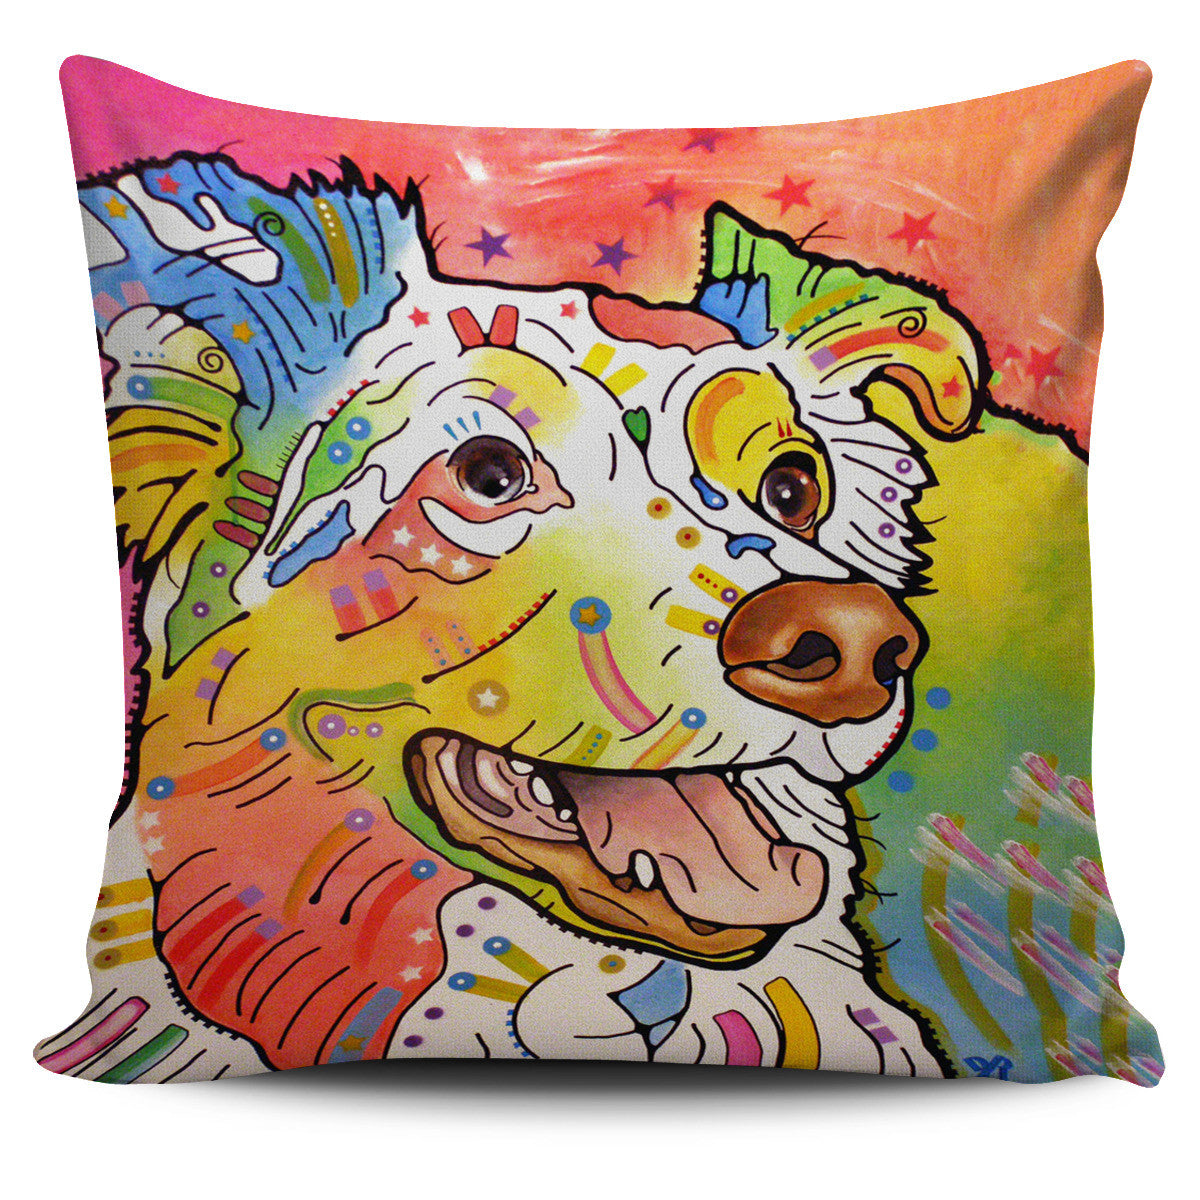 English Shepherd Pillow Covers Offer